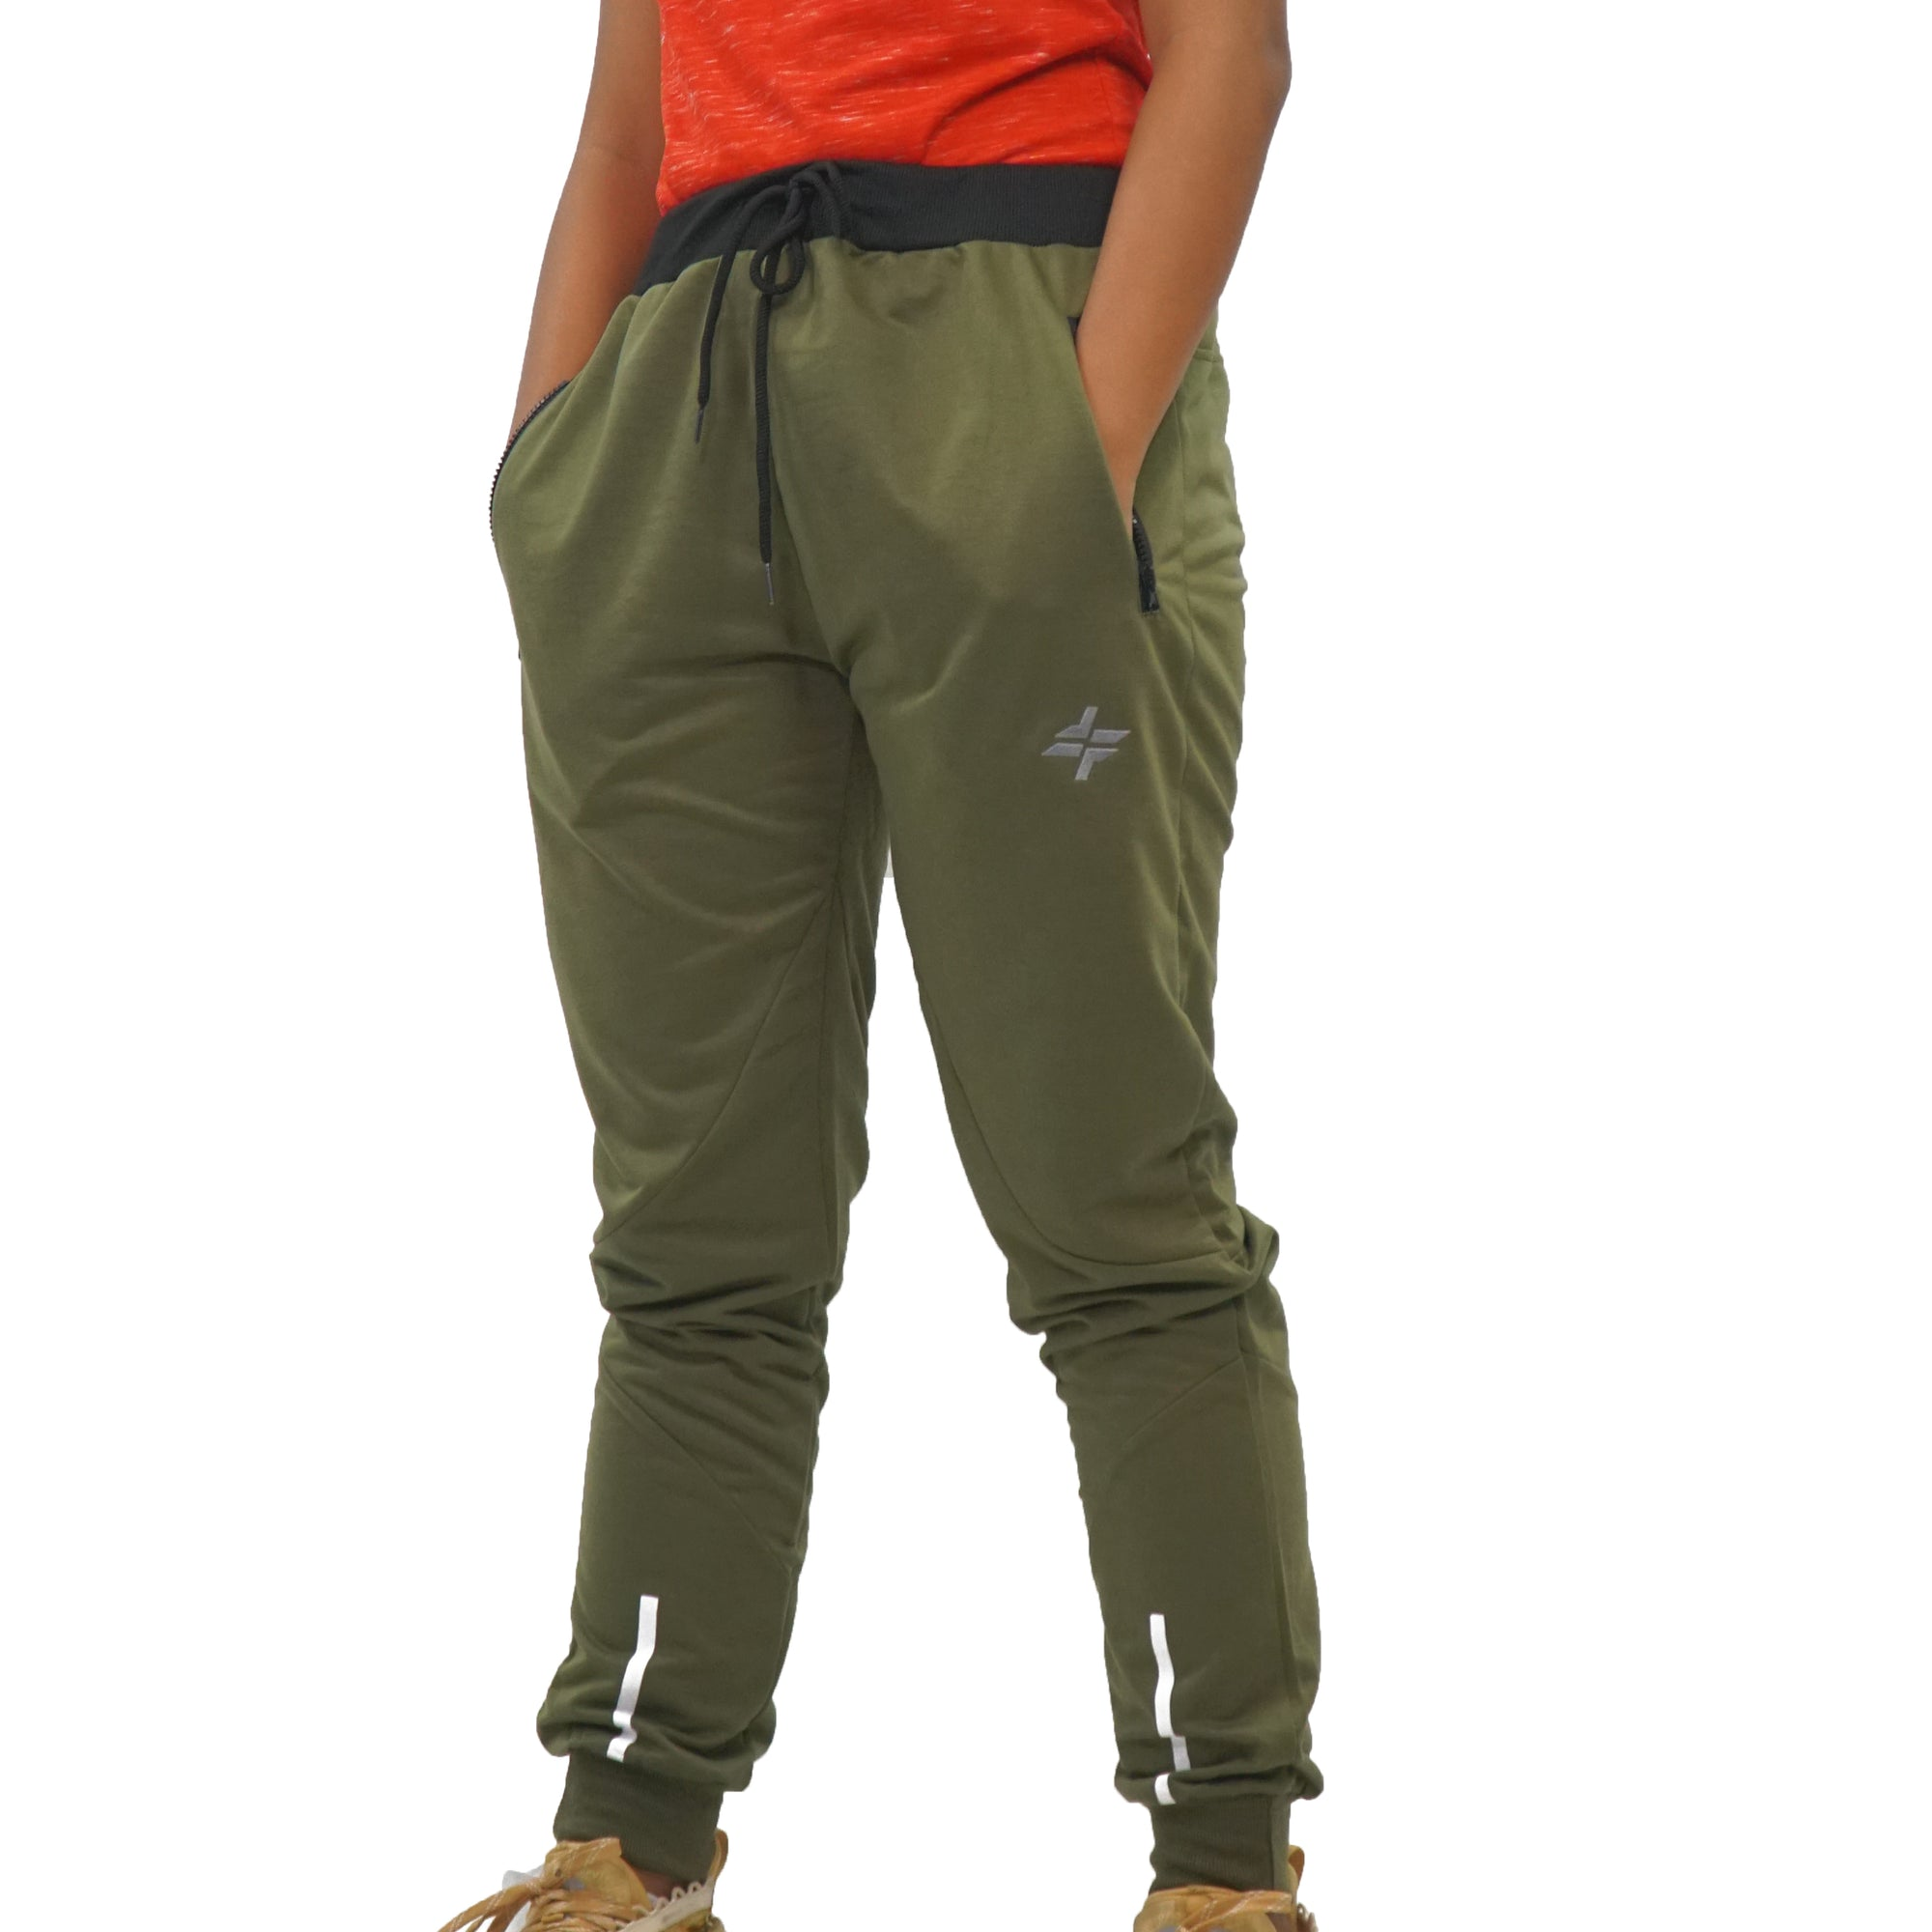 ActivJogger Army Green